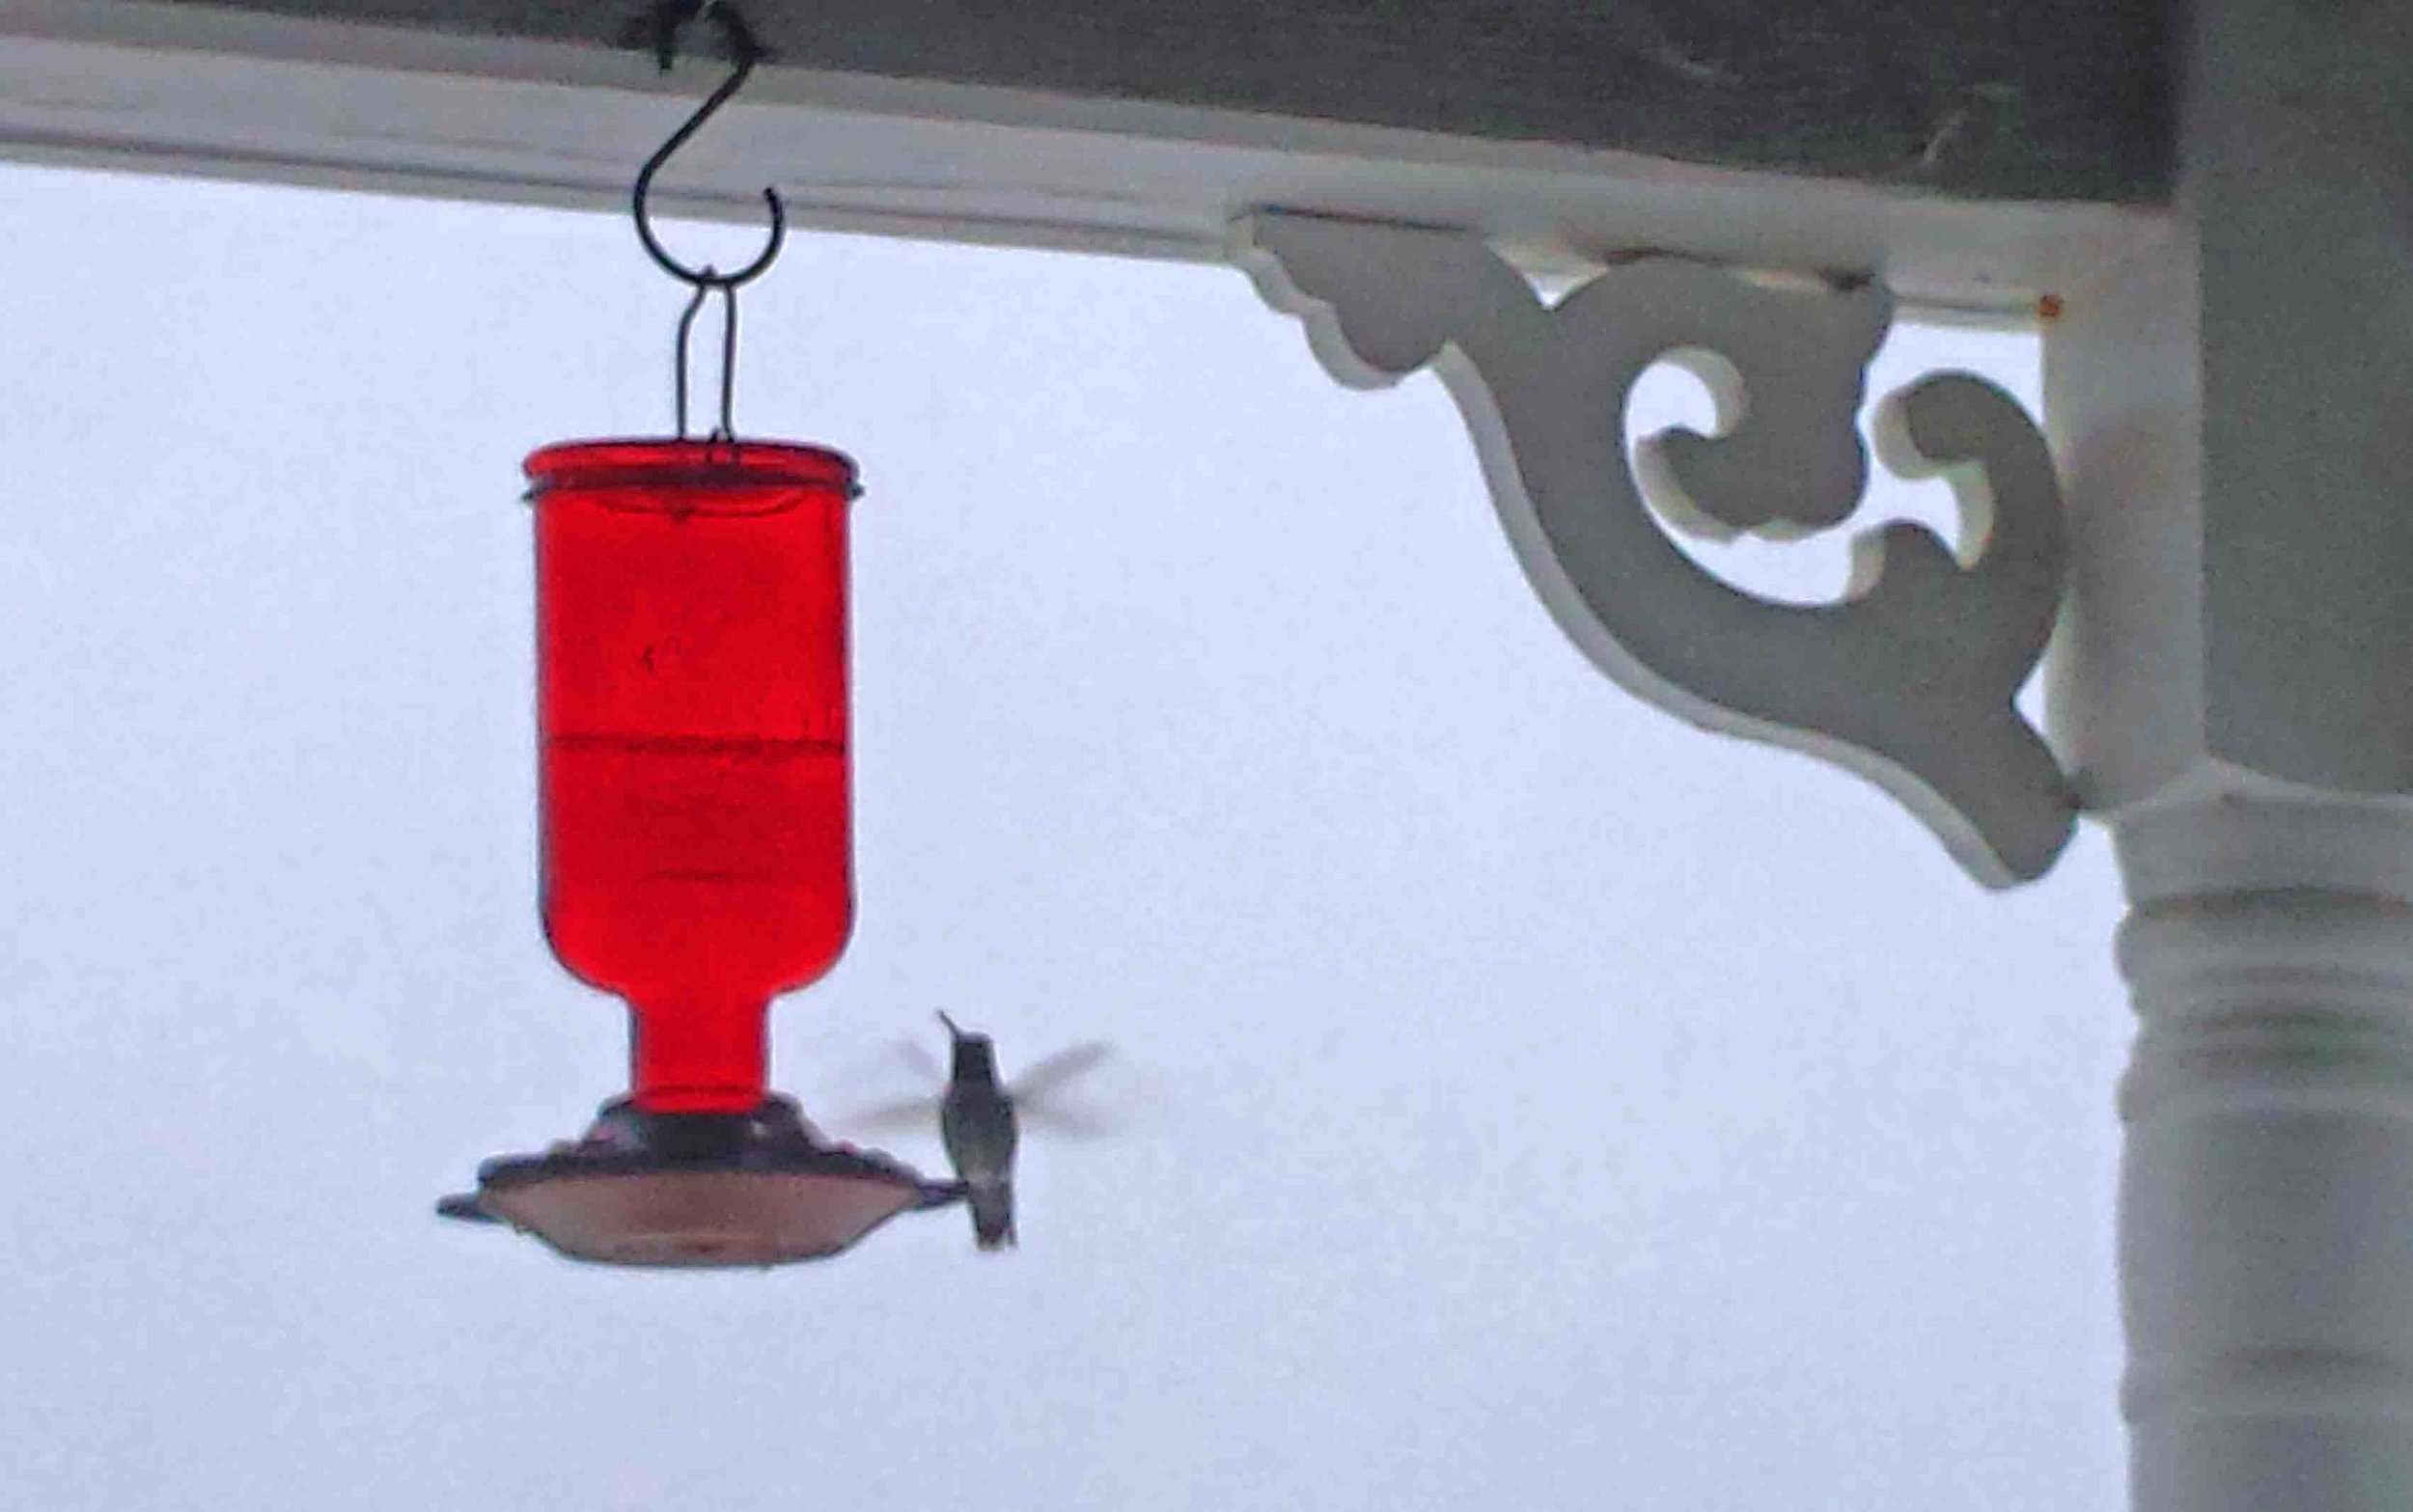 Our hummer friend buzzed me on the porch - that's how I knew to defrost his feeder.                          Photo:   (c) Barb Ayers, DogDiary.org